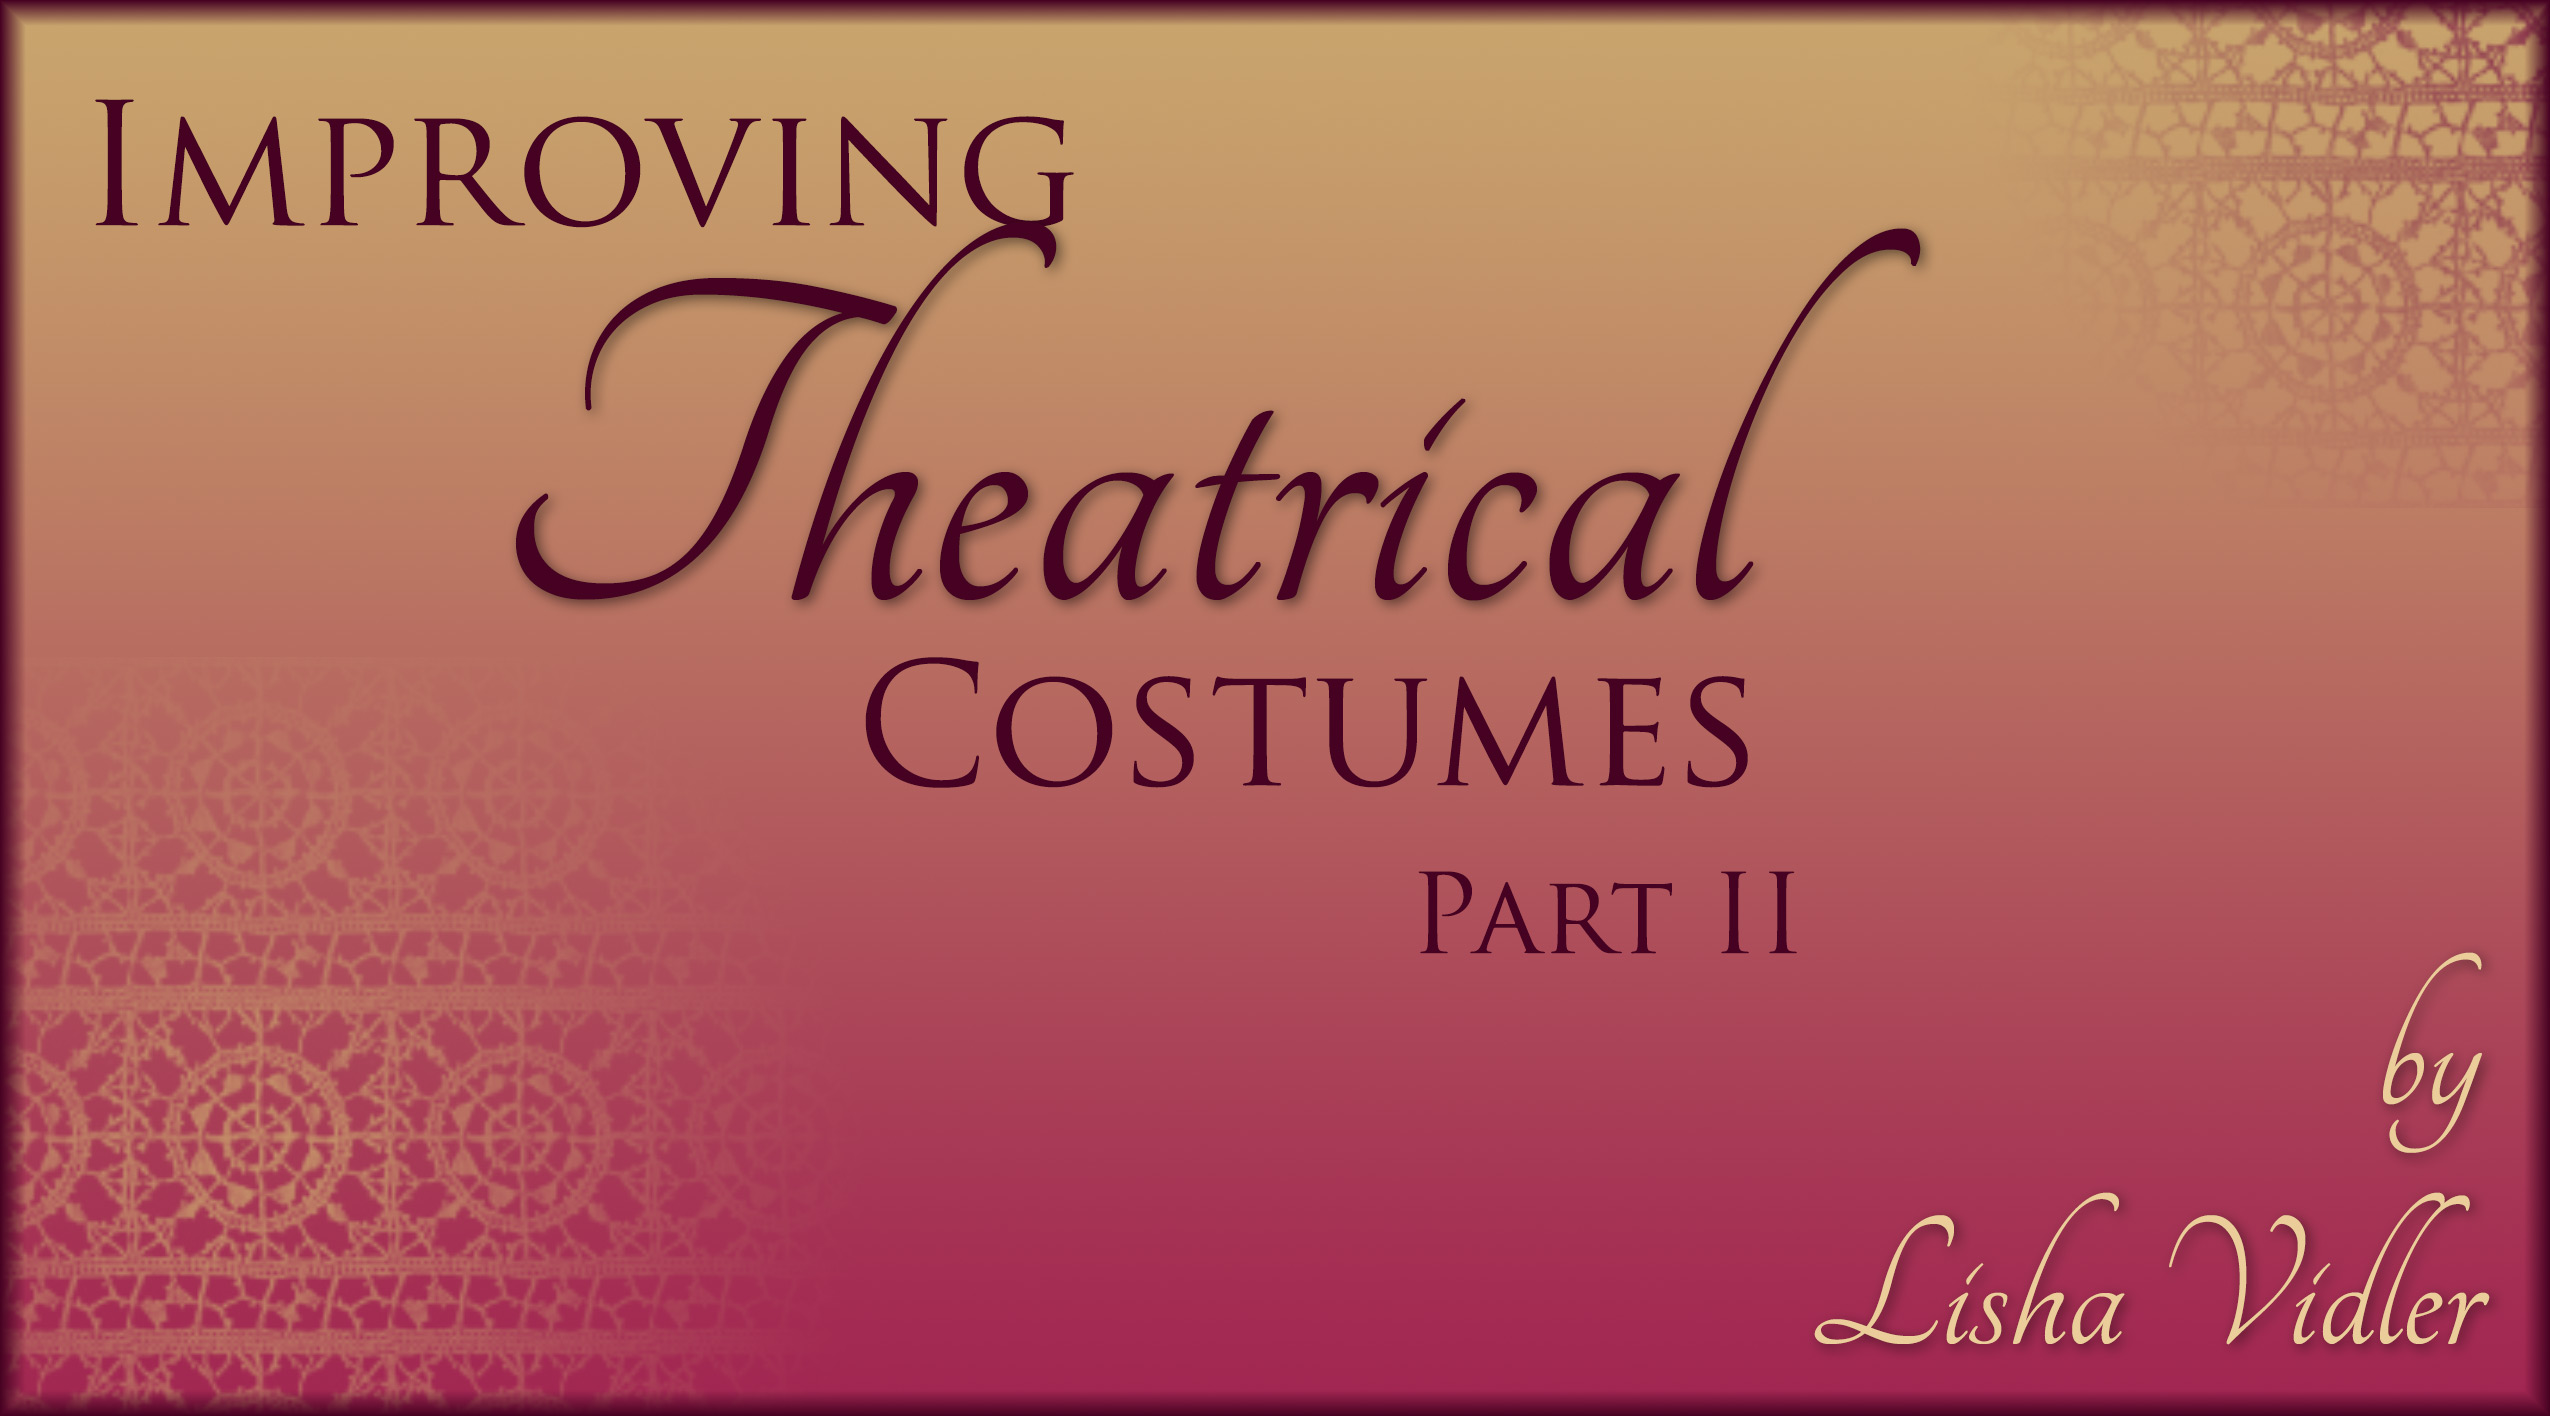 Improving Theatrical Costuming, Part II